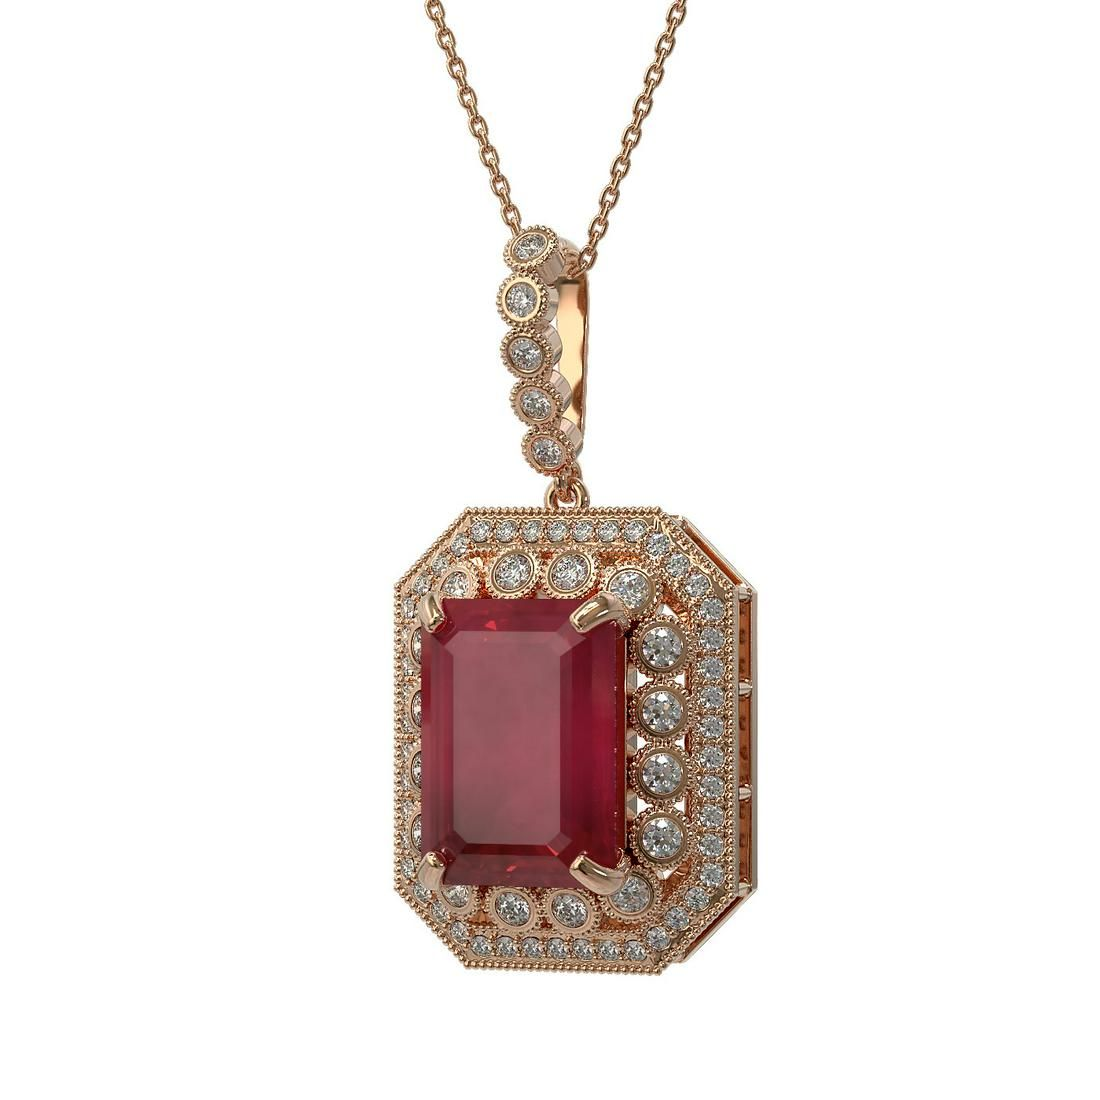 16.46 ctw Certified Ruby & Diamond Victorian Necklace